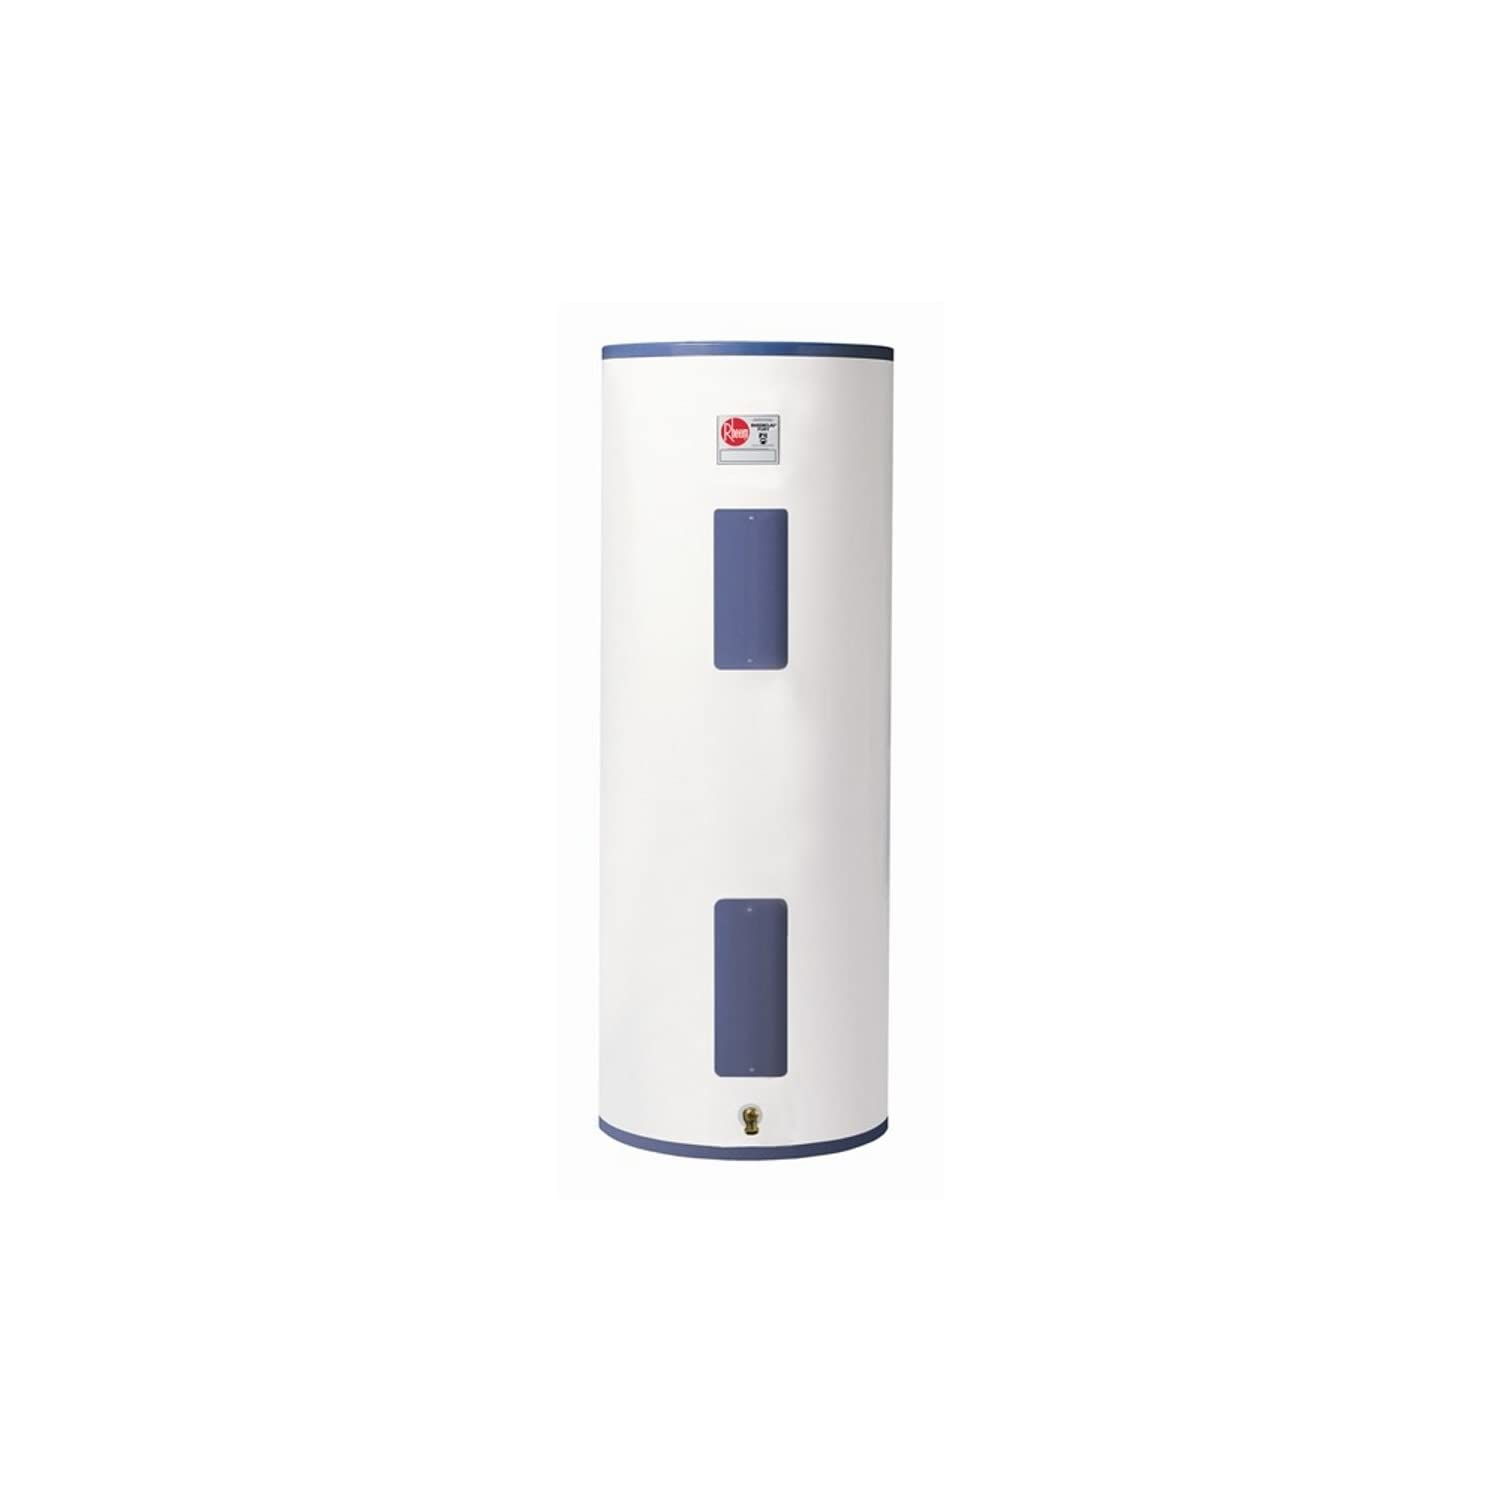 Rheem High Efficiency Water Heater 50 Gallon 260 Fs